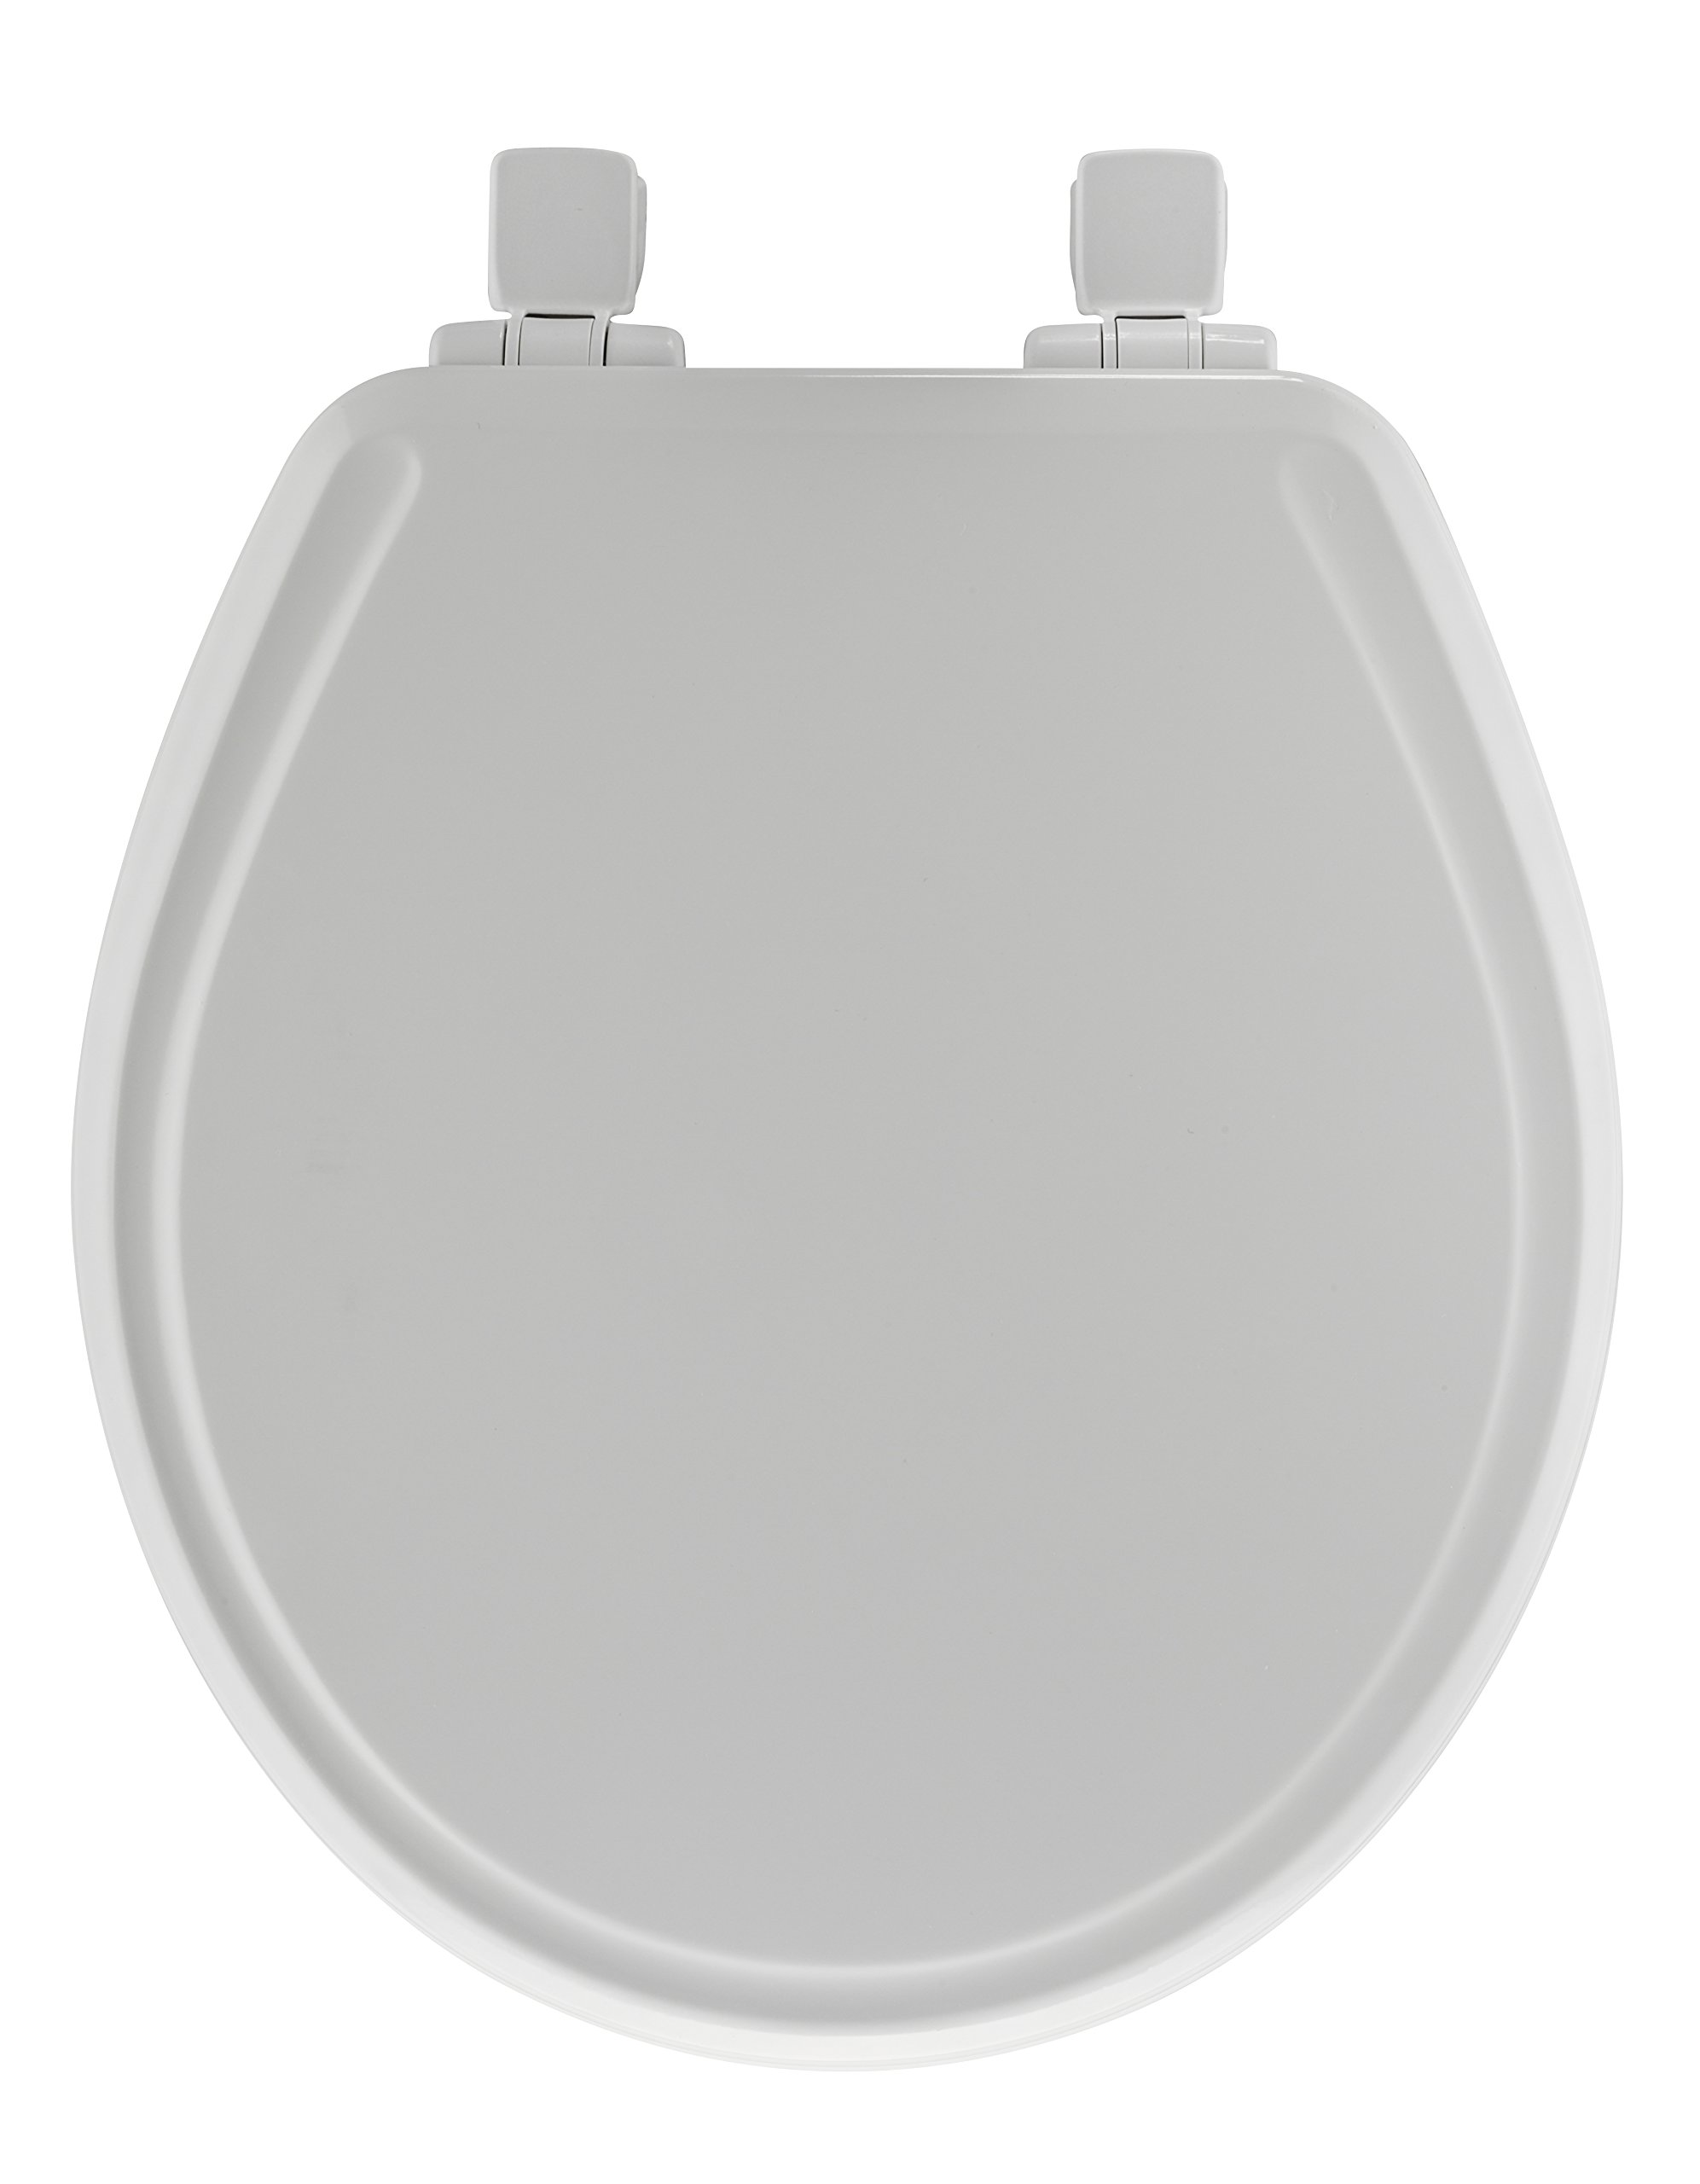 Excellent Cheap Mayfair Easy Clean Toilet Seat Find Mayfair Easy Pdpeps Interior Chair Design Pdpepsorg